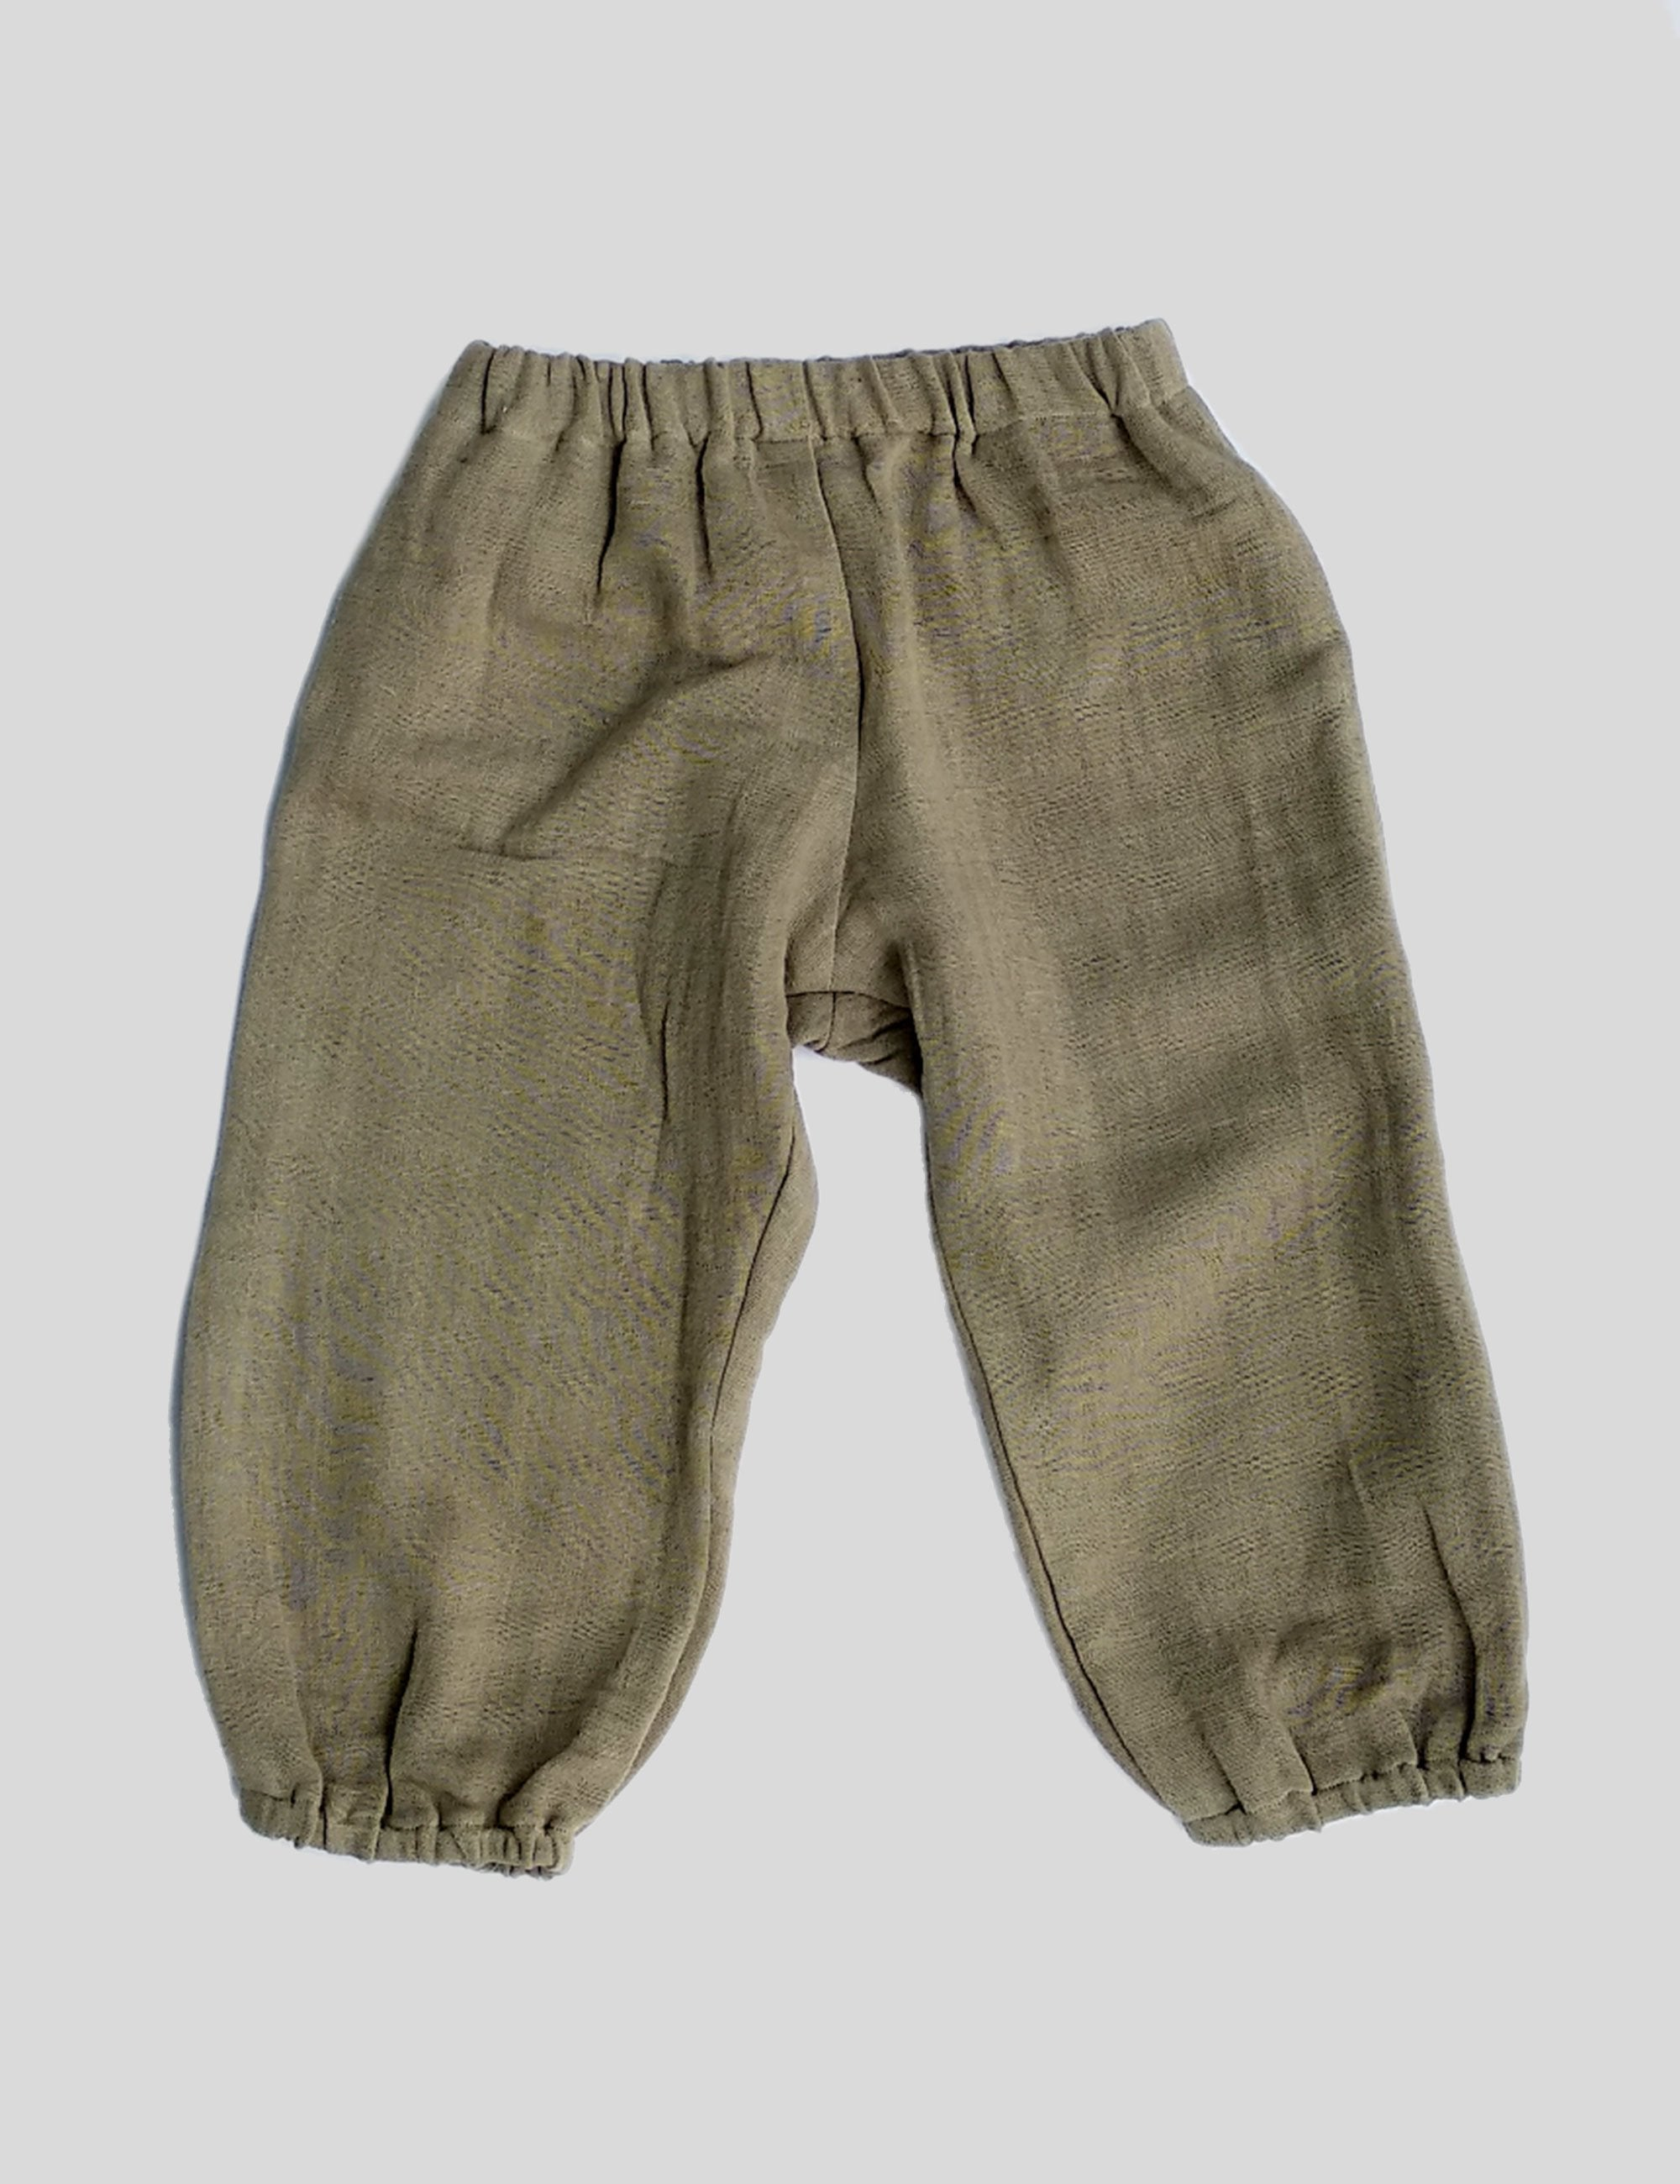 Two Sided Pockets Balloon Pants in Grey for Boys